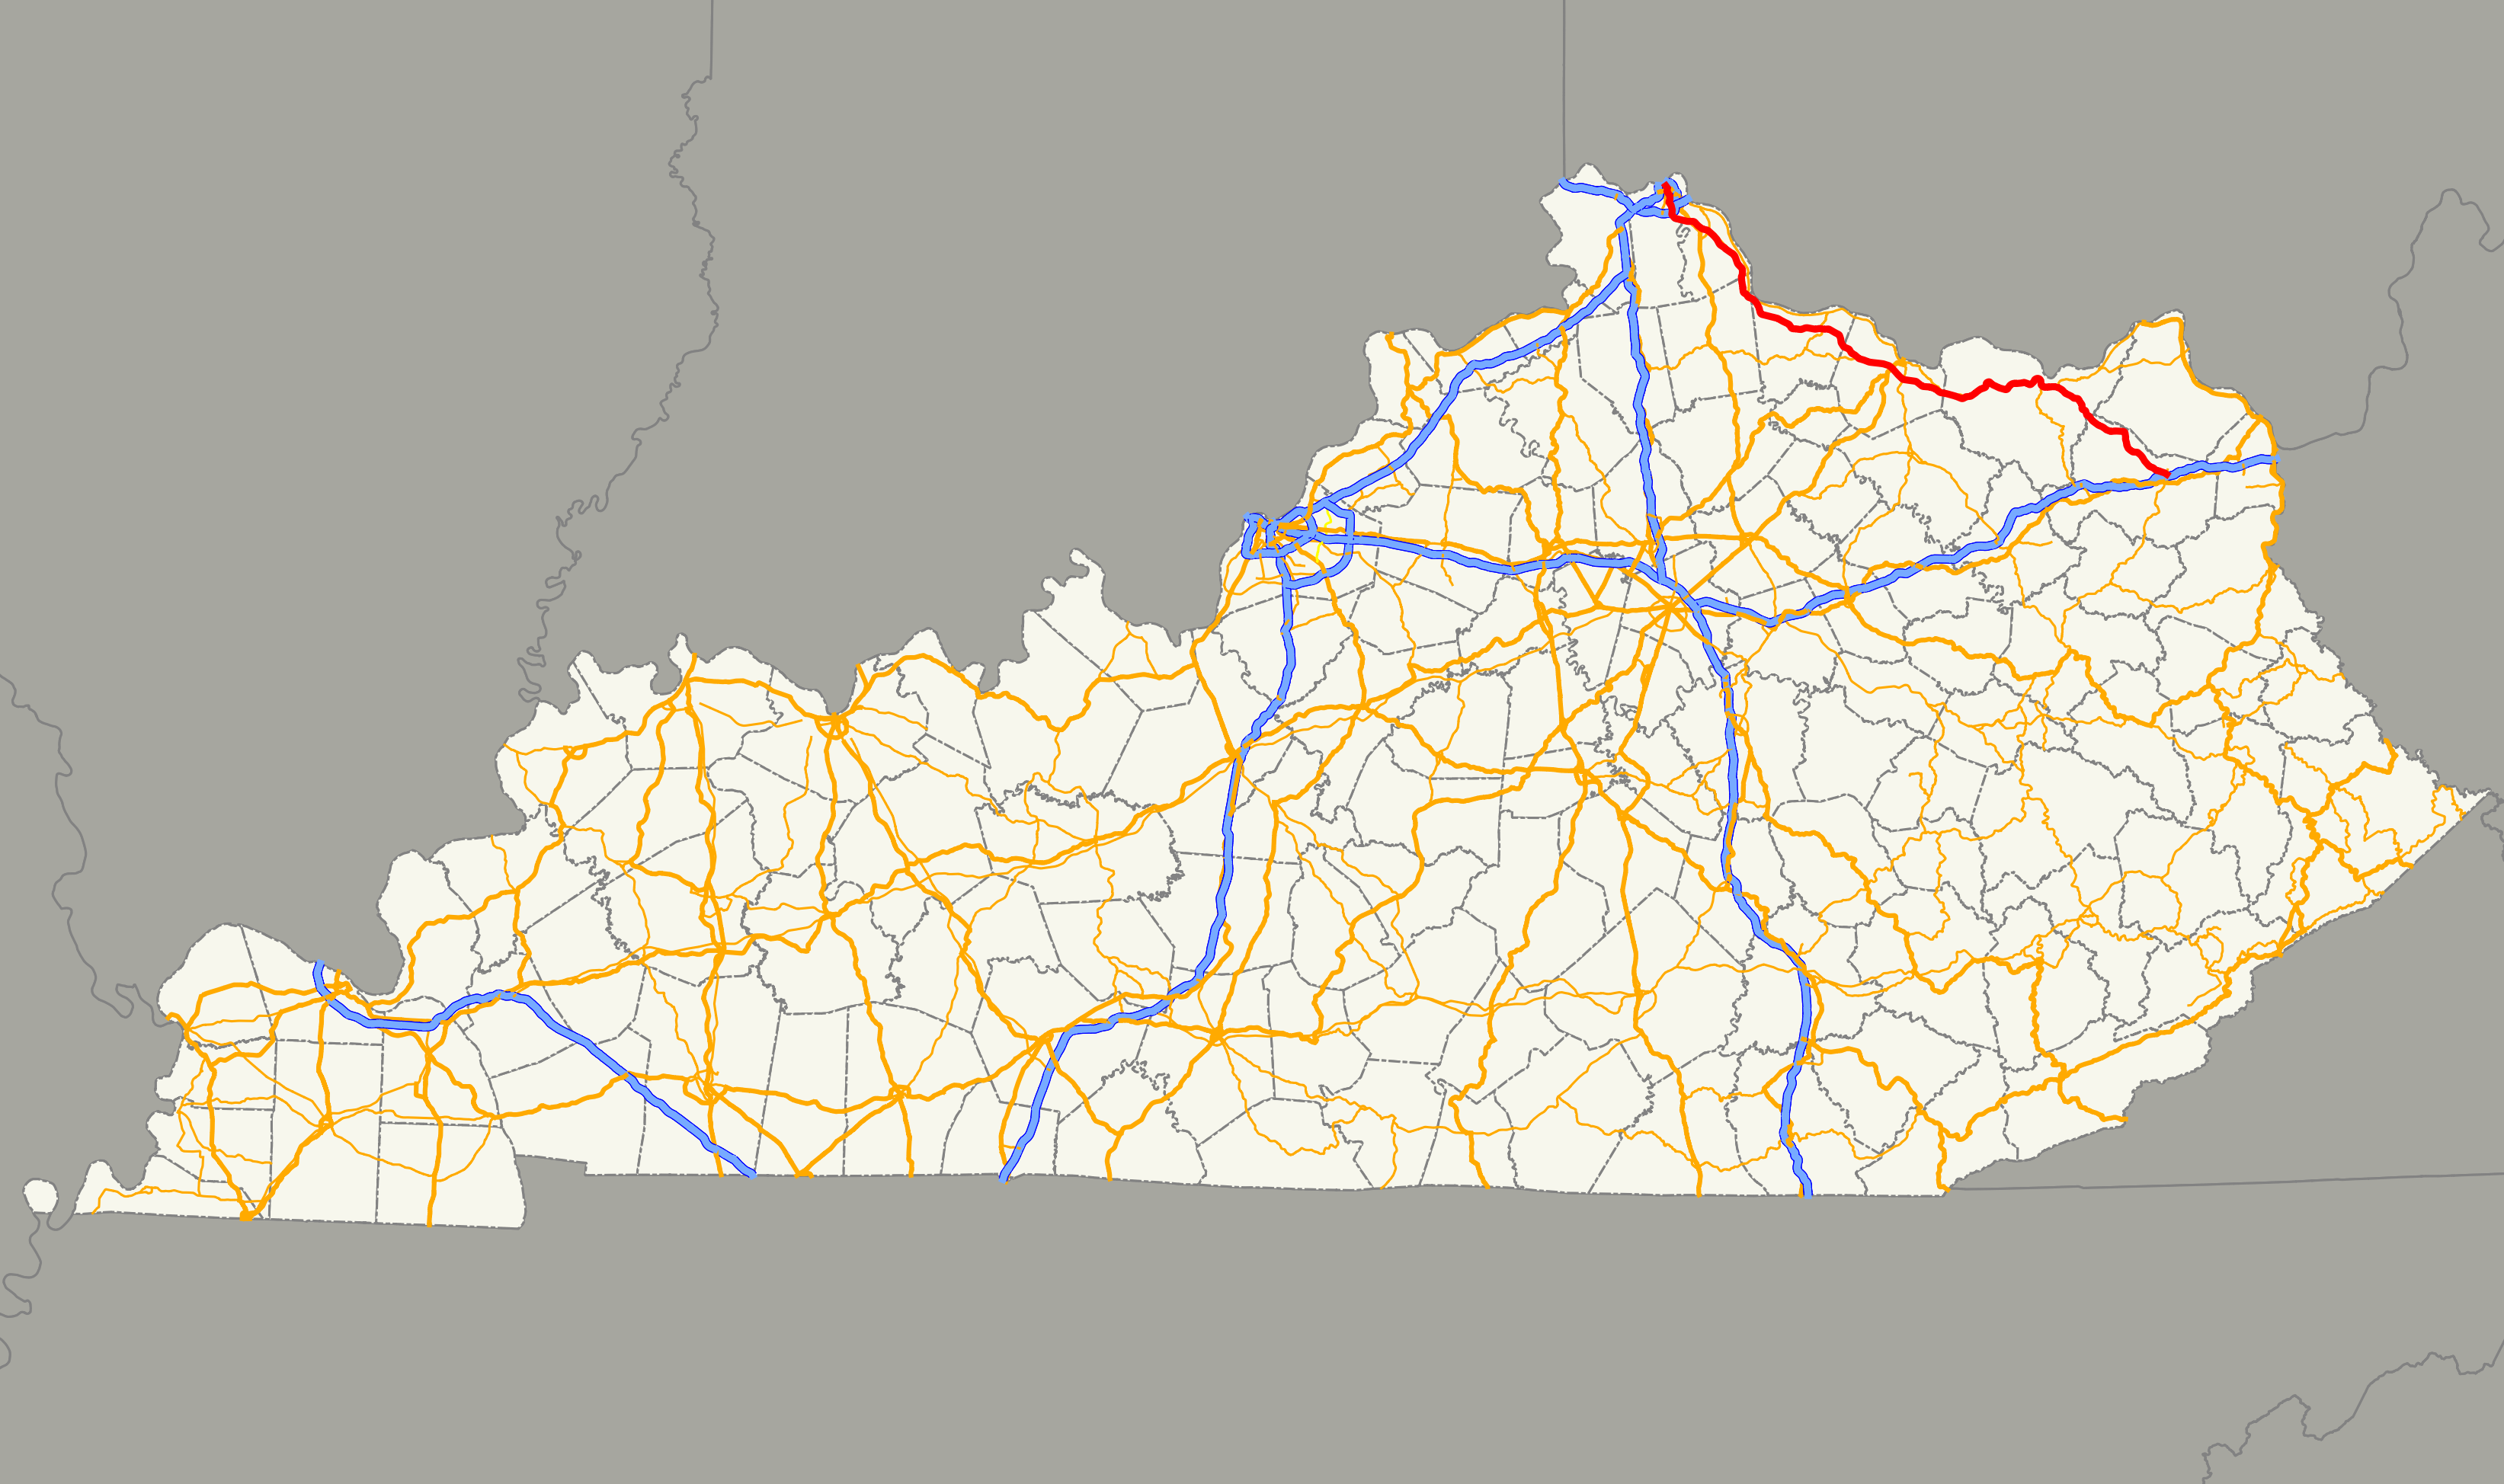 Kentucky Route 9 - Wikipedia on md interstate map, tx interstate map, fl interstate map, indiana interstate map, mi interstate map, louisville interstate map, interstate highway map, kentucky official highway map, az interstate map, va interstate map, sc interstate map, ky road maps driving directions, nc interstate map, ga interstate map, ohio interstate map, co interstate map, il interstate map, ny state interstate map, tn interstate map, se interstate map,